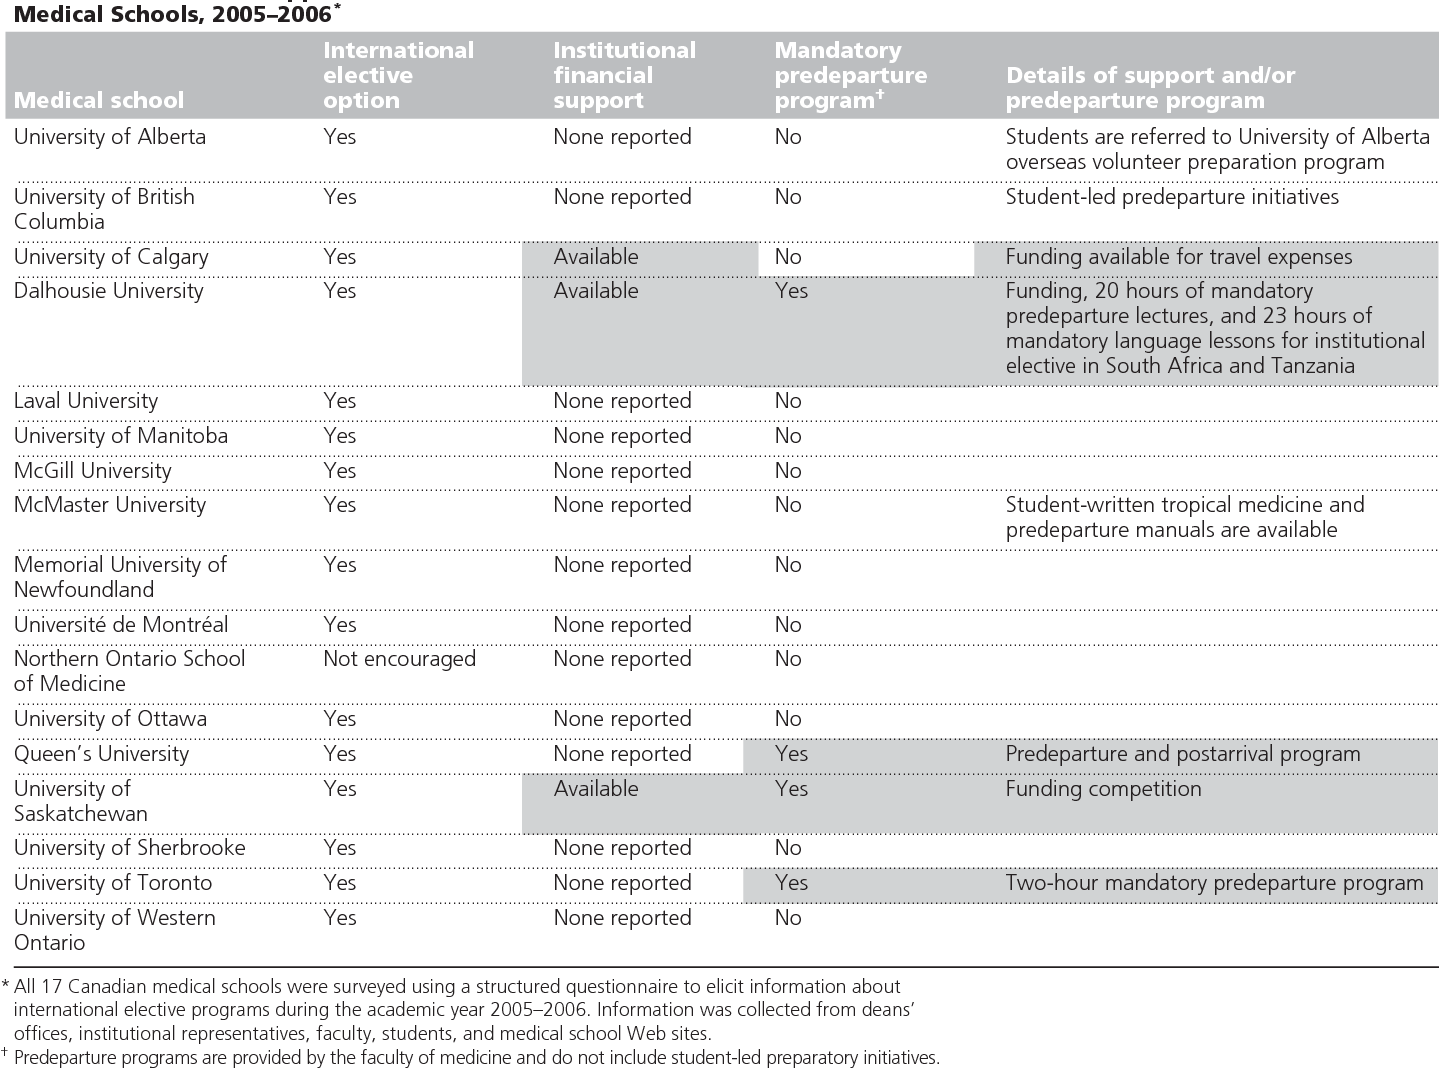 Global health in Canadian medical education: current practices and